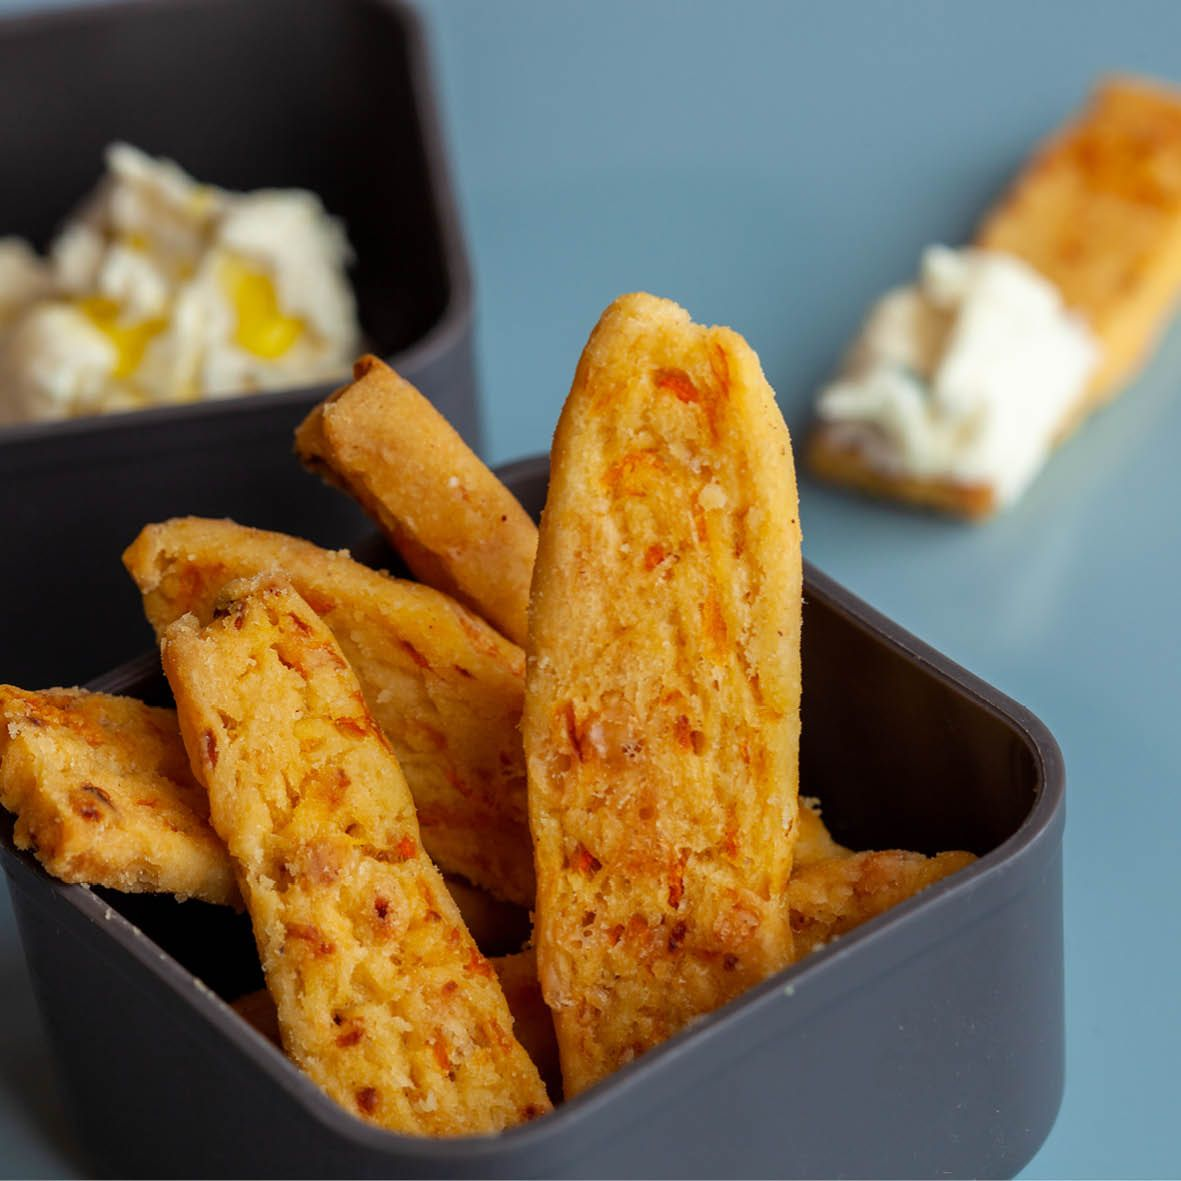 Carrot_cracker_batons_and_cream_cheese_dip.jpg